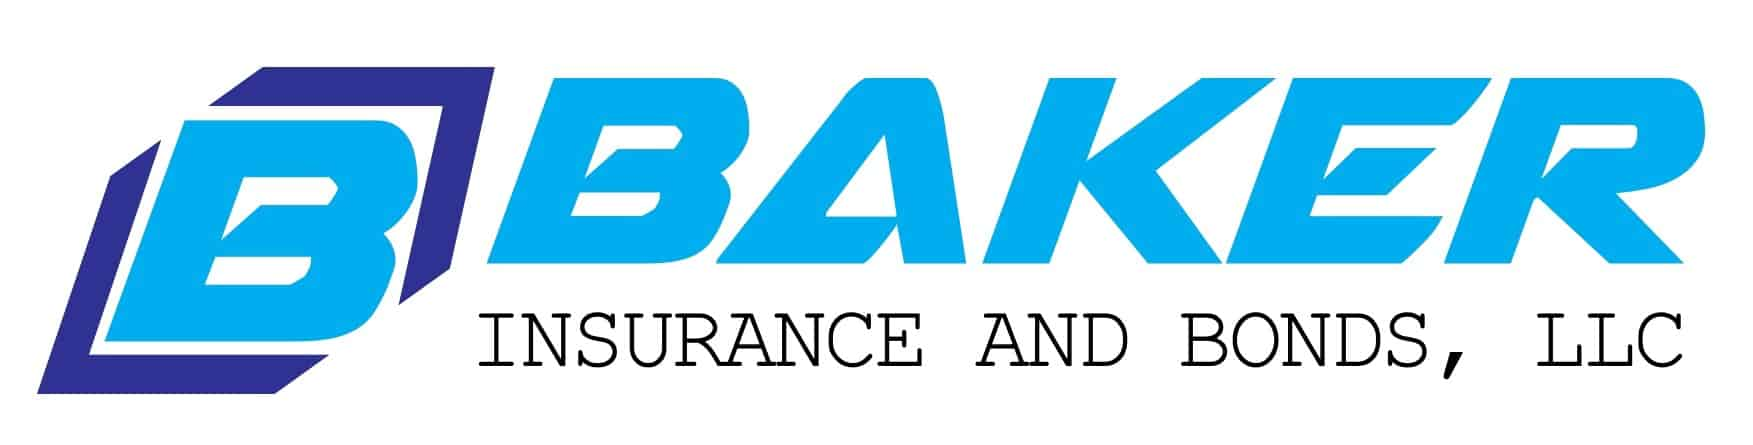 Baker Insurance and Bonds LLC